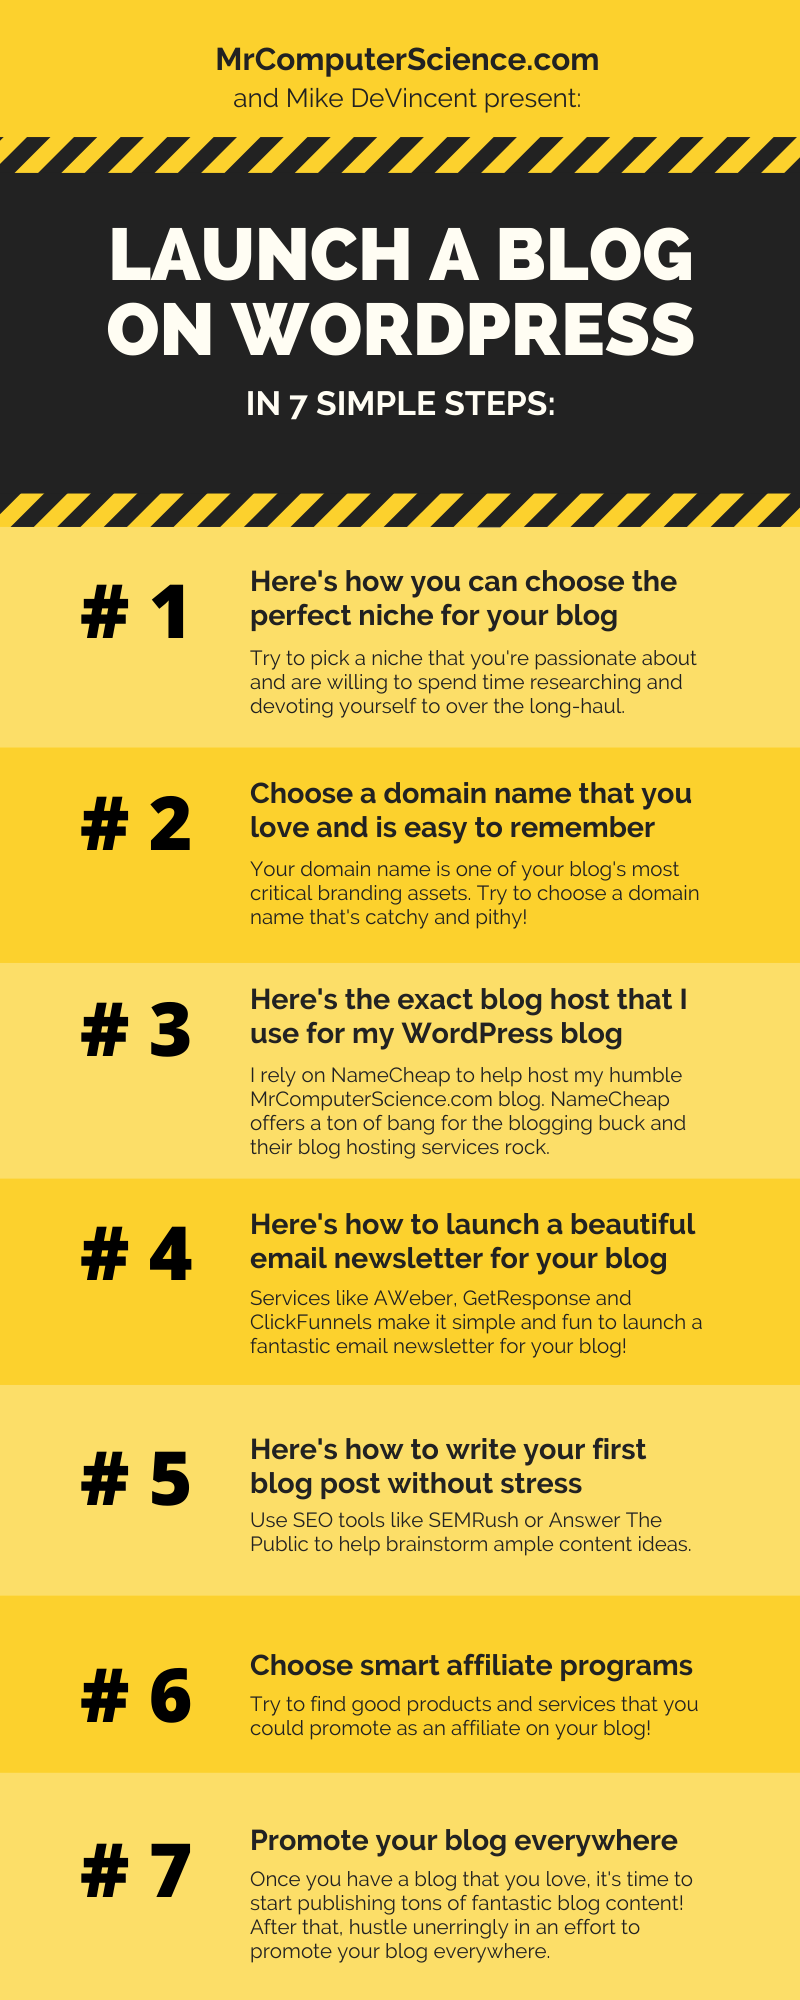 Infographic - How To Launch A Blog On WordPress Successfully Without Stress In 7 Simple Steps